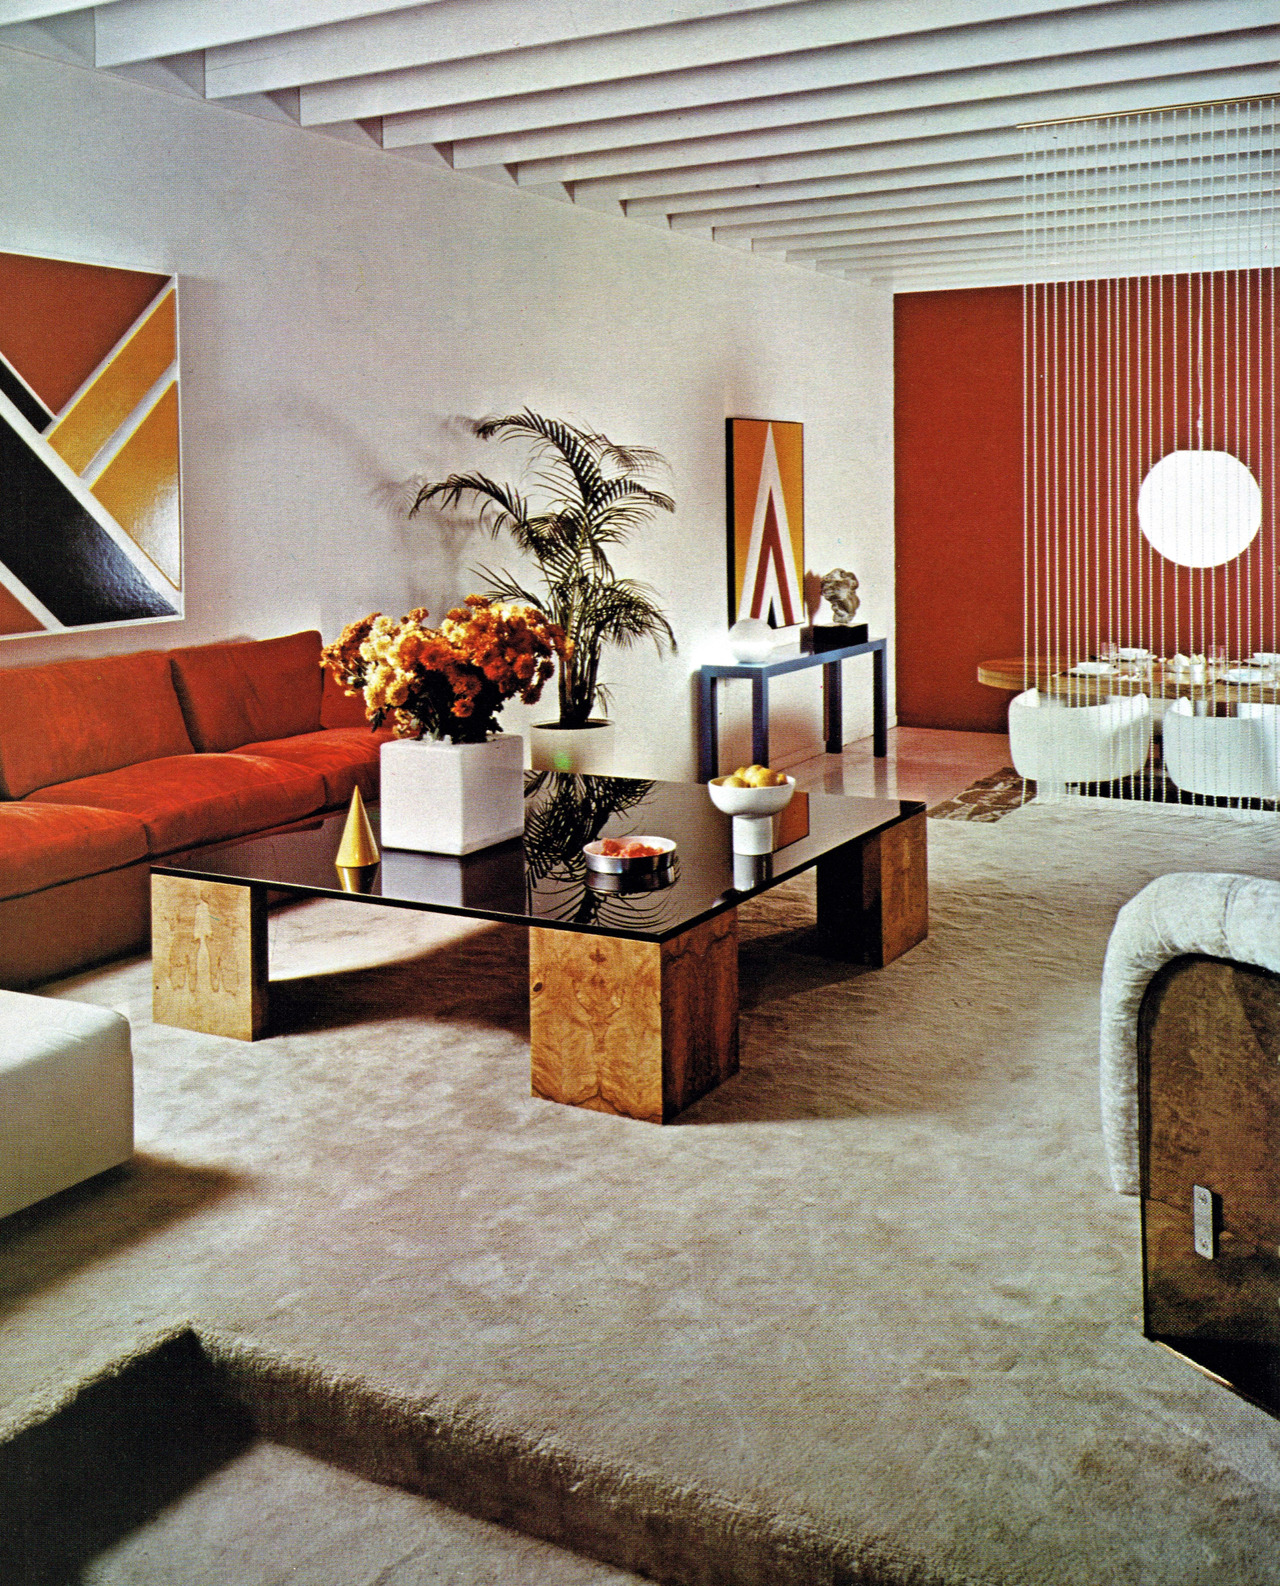 Living room design 1970 1978 2 warps to neptune for Interior design 70s house